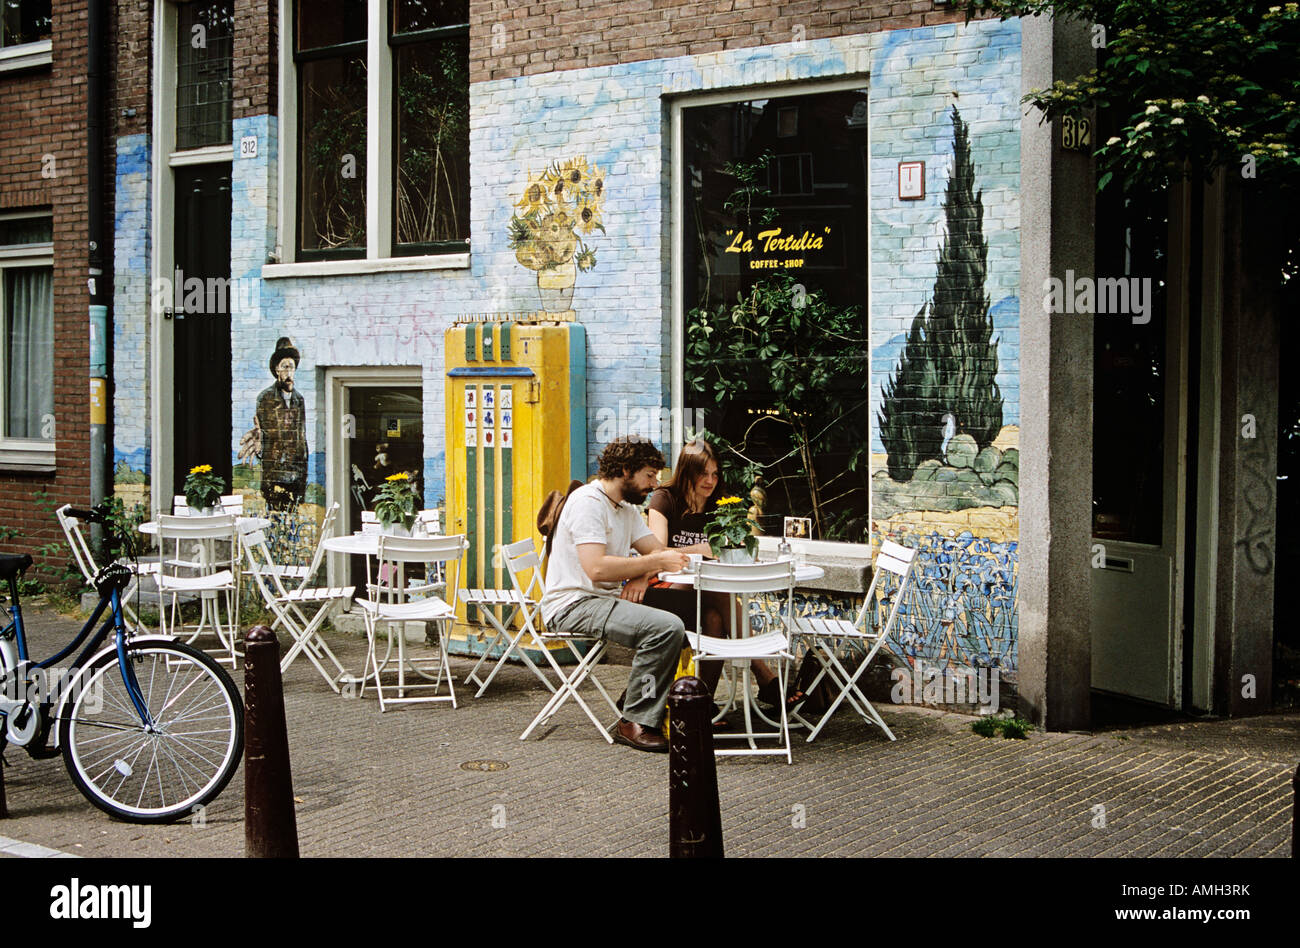 People Seated At Outdoor Cafe Table Outside La Tertulia Coffee Shop Amsterdam Holland